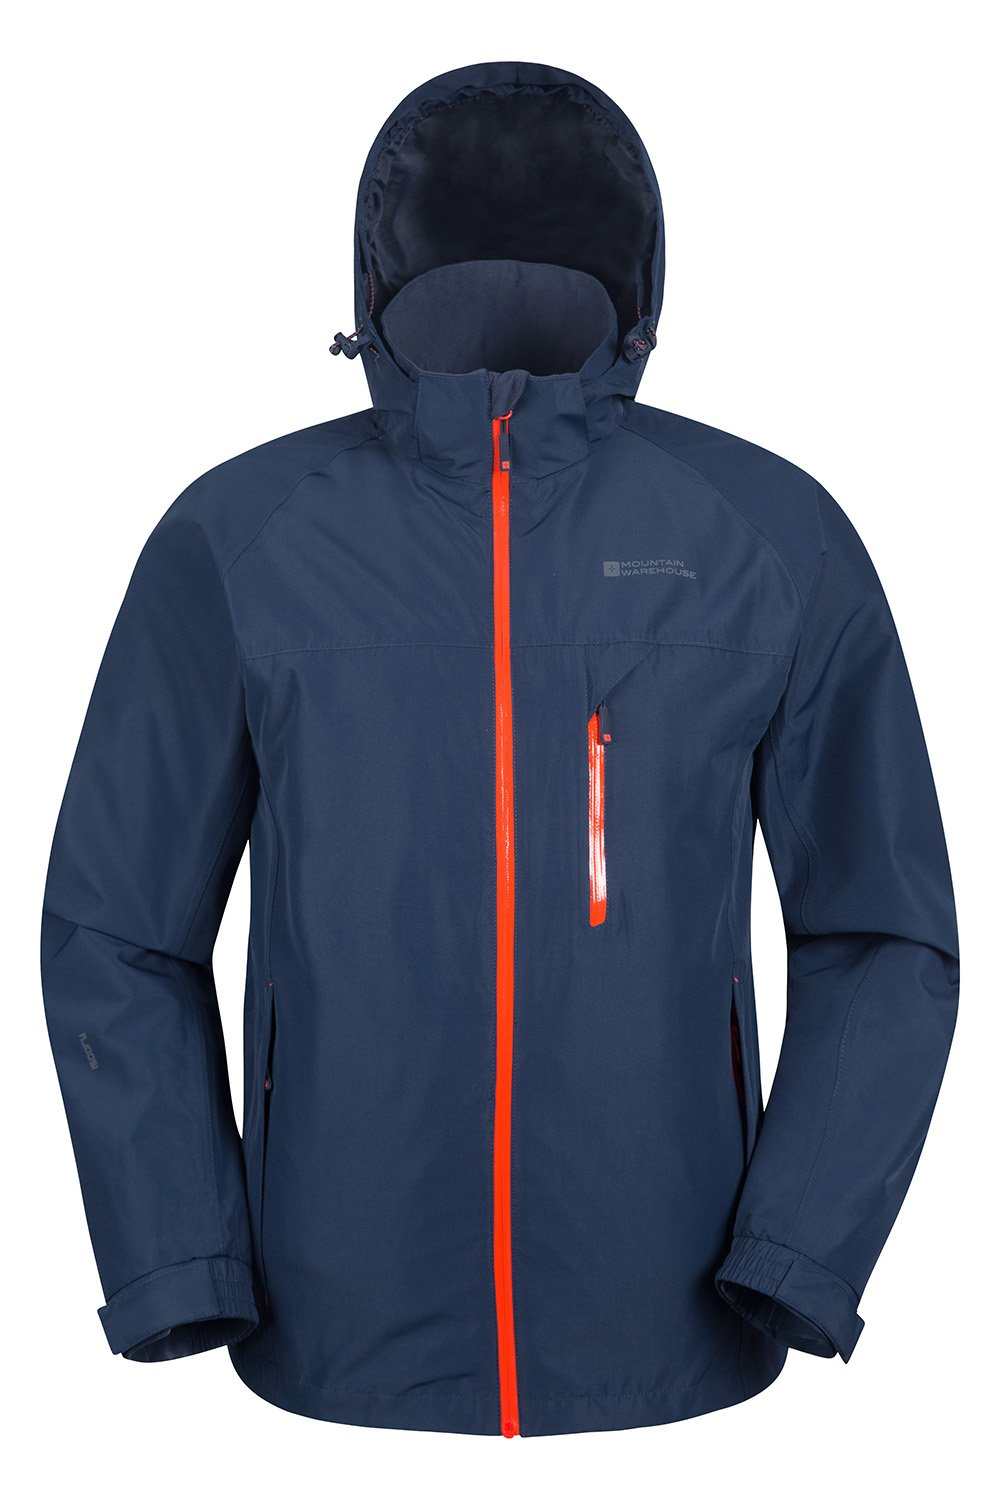 Mountain Warehouse Brisk Extreme Mens Waterproof Jacket - Adjustable Cuffs & Hood, Taped Seams Rain Coat, Breathable Winter Jacket - Ideal For Camping in Cold Weather